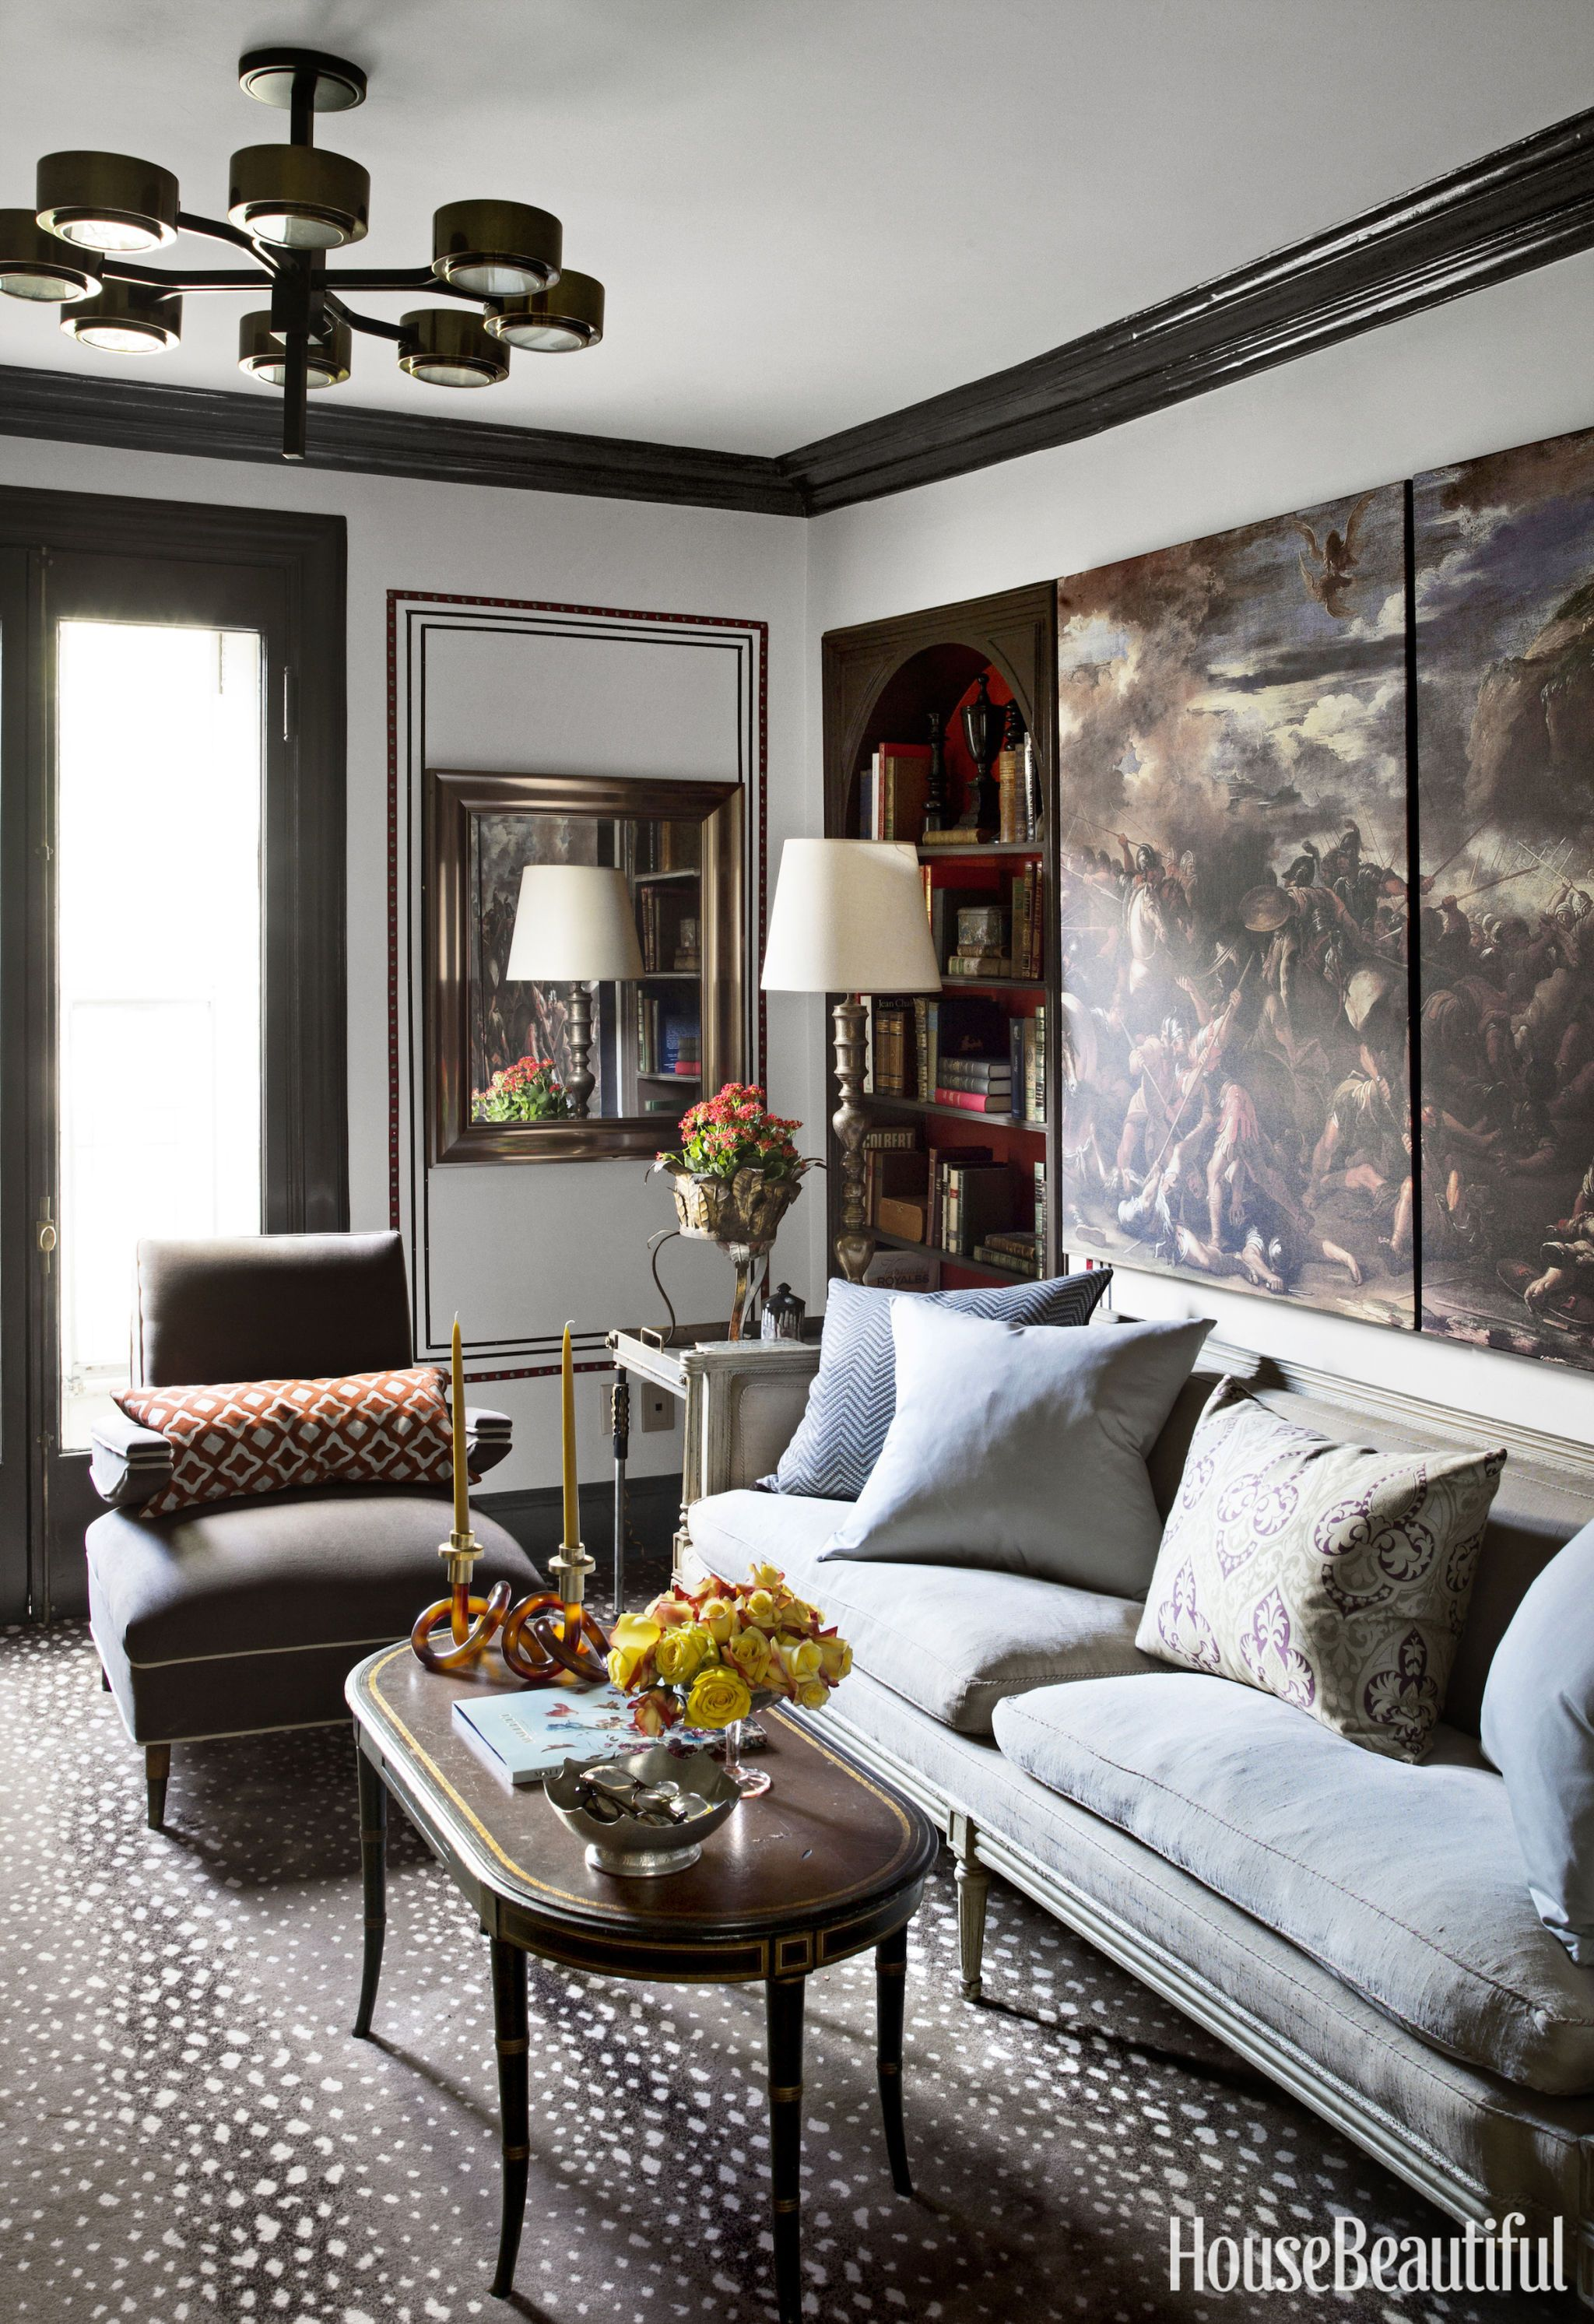 70 Best Living Room Decorating Ideas & Designs ... on Pictures For Room Decor  id=51283